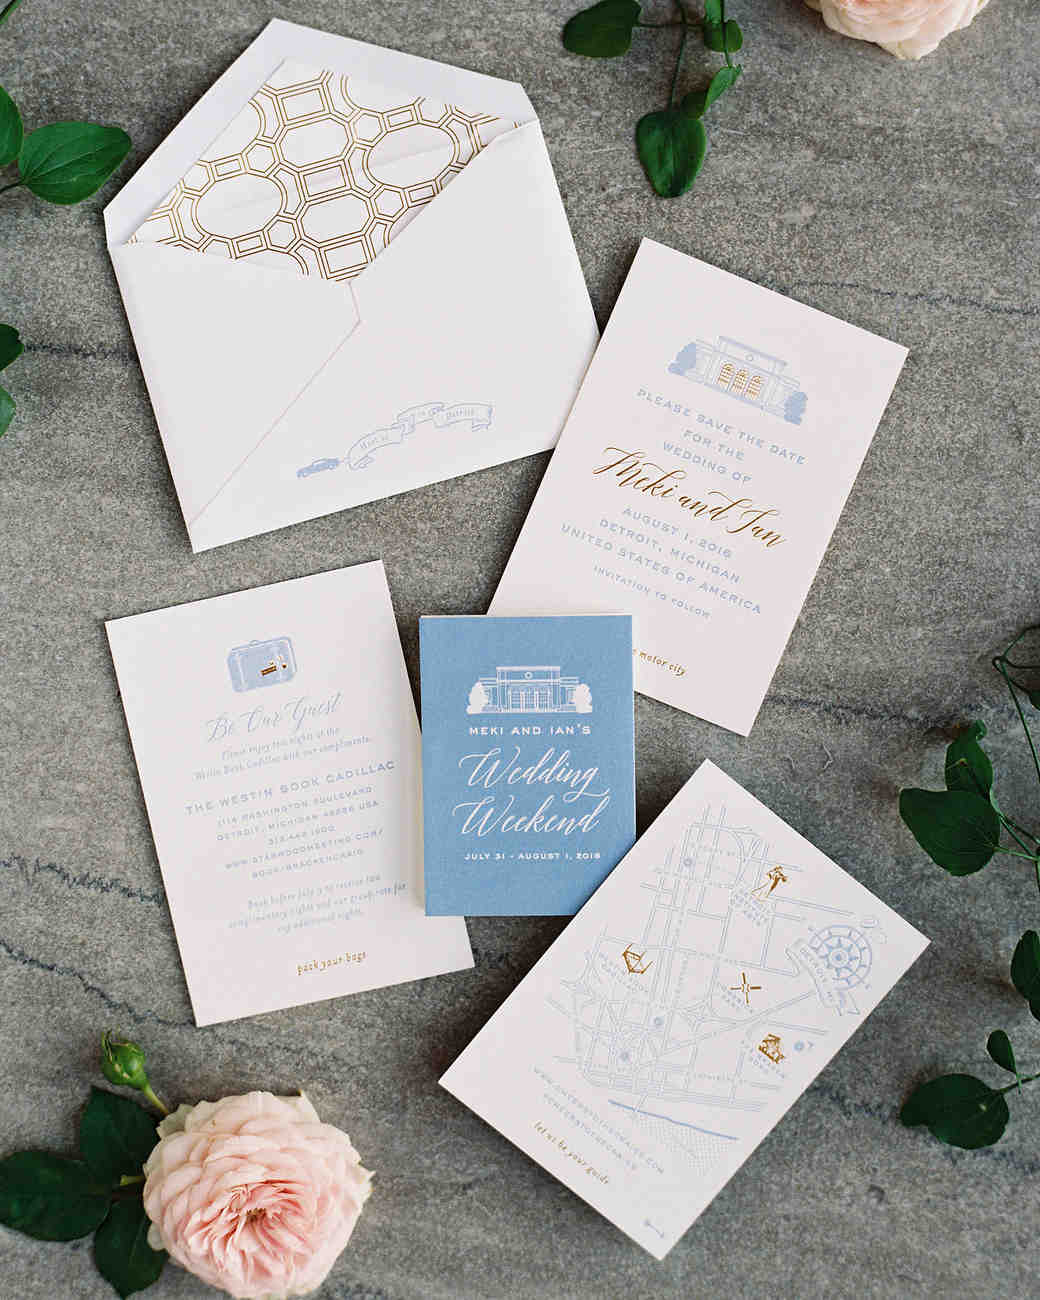 meki ian wedding michigan stationery suite